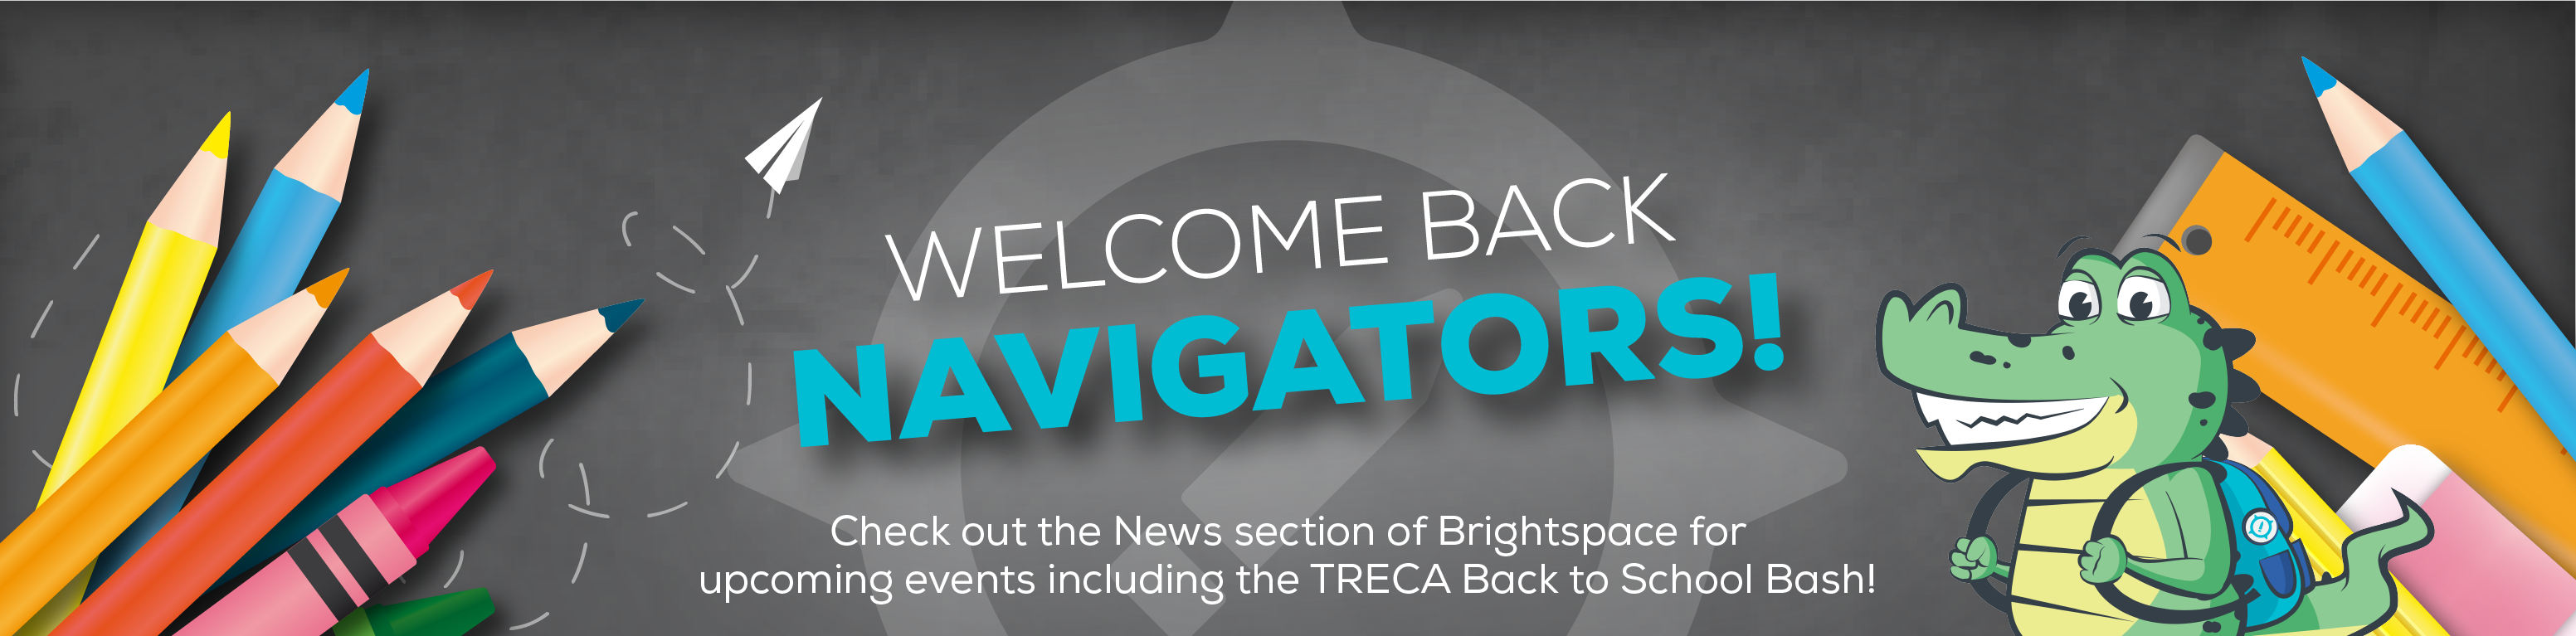 Welcome Back! Login and check out news for info and events.